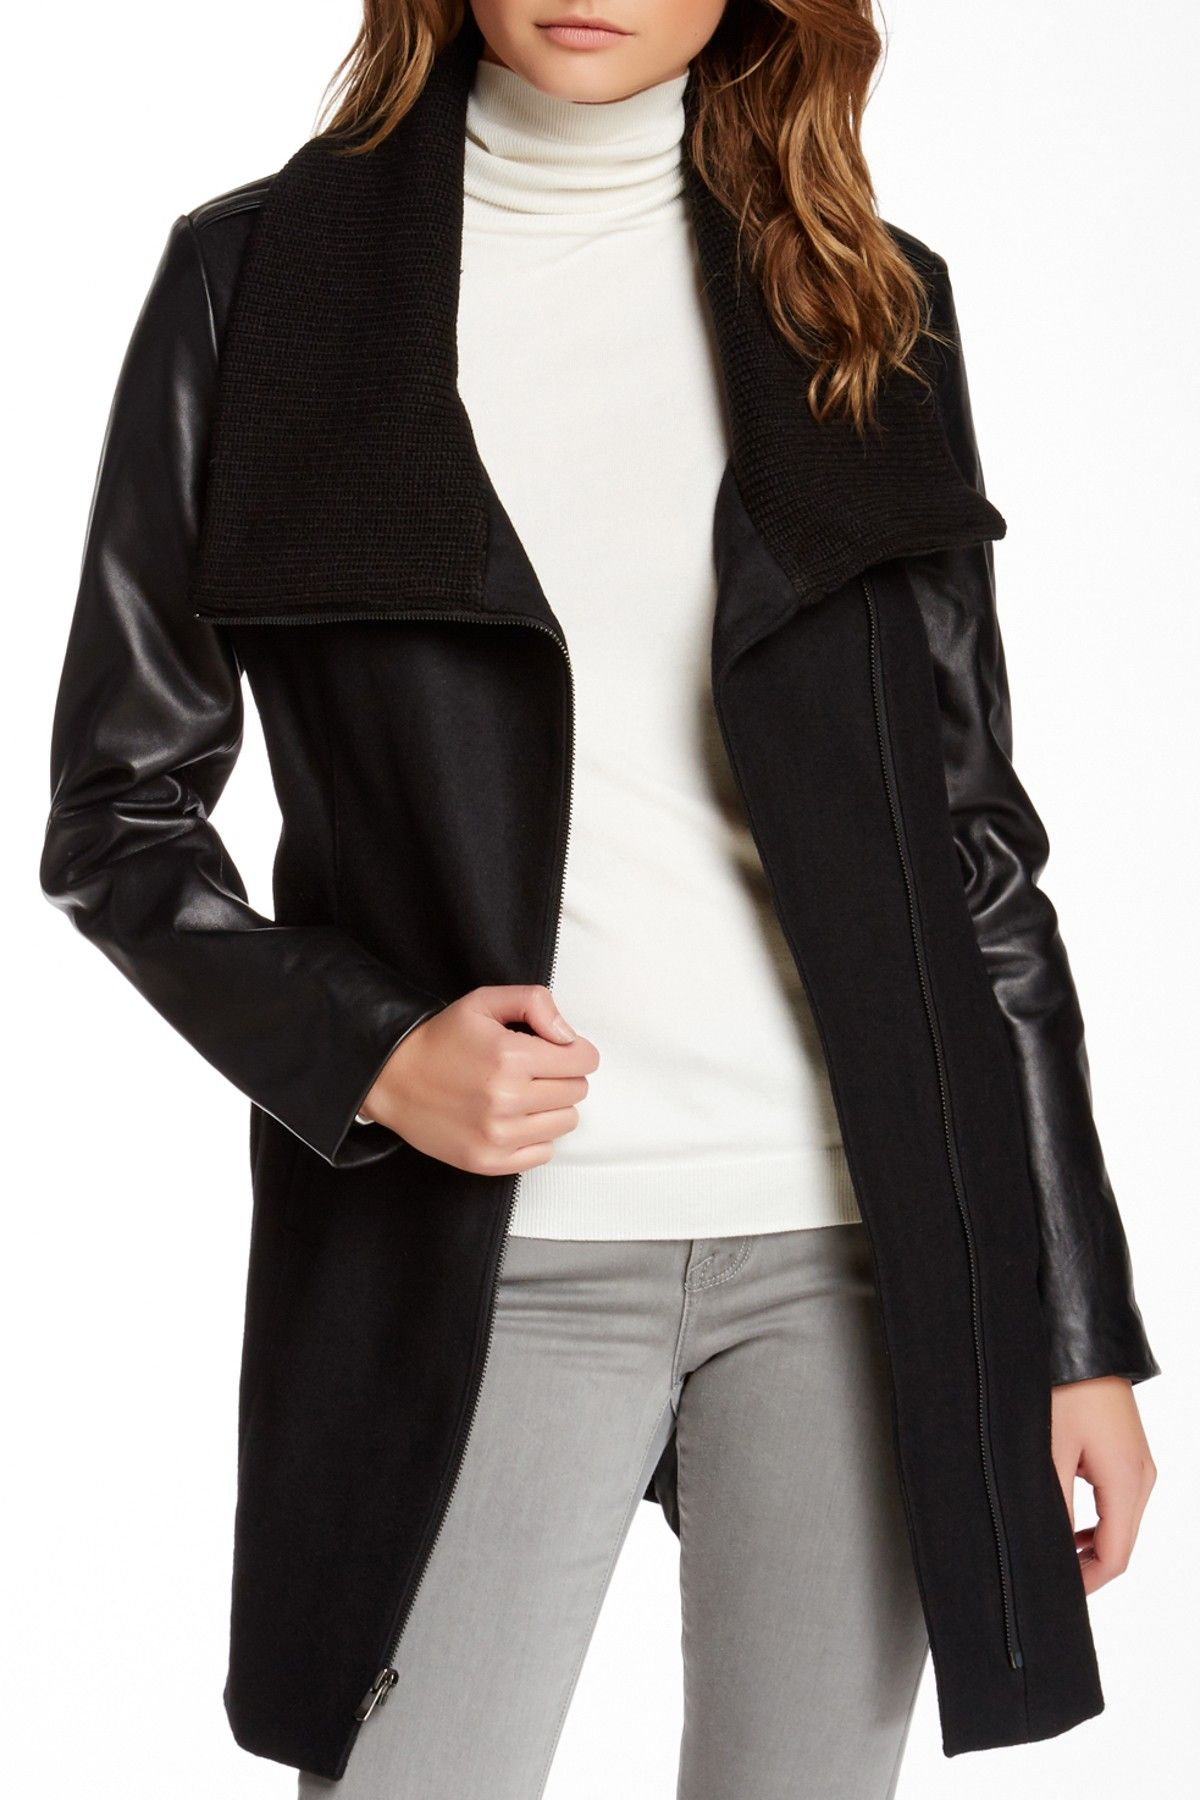 Truth Of Touch - Mercer Leather Sleeve Wool Blend Coat at Nordstrom Rack. Free Shipping on orders over $100.